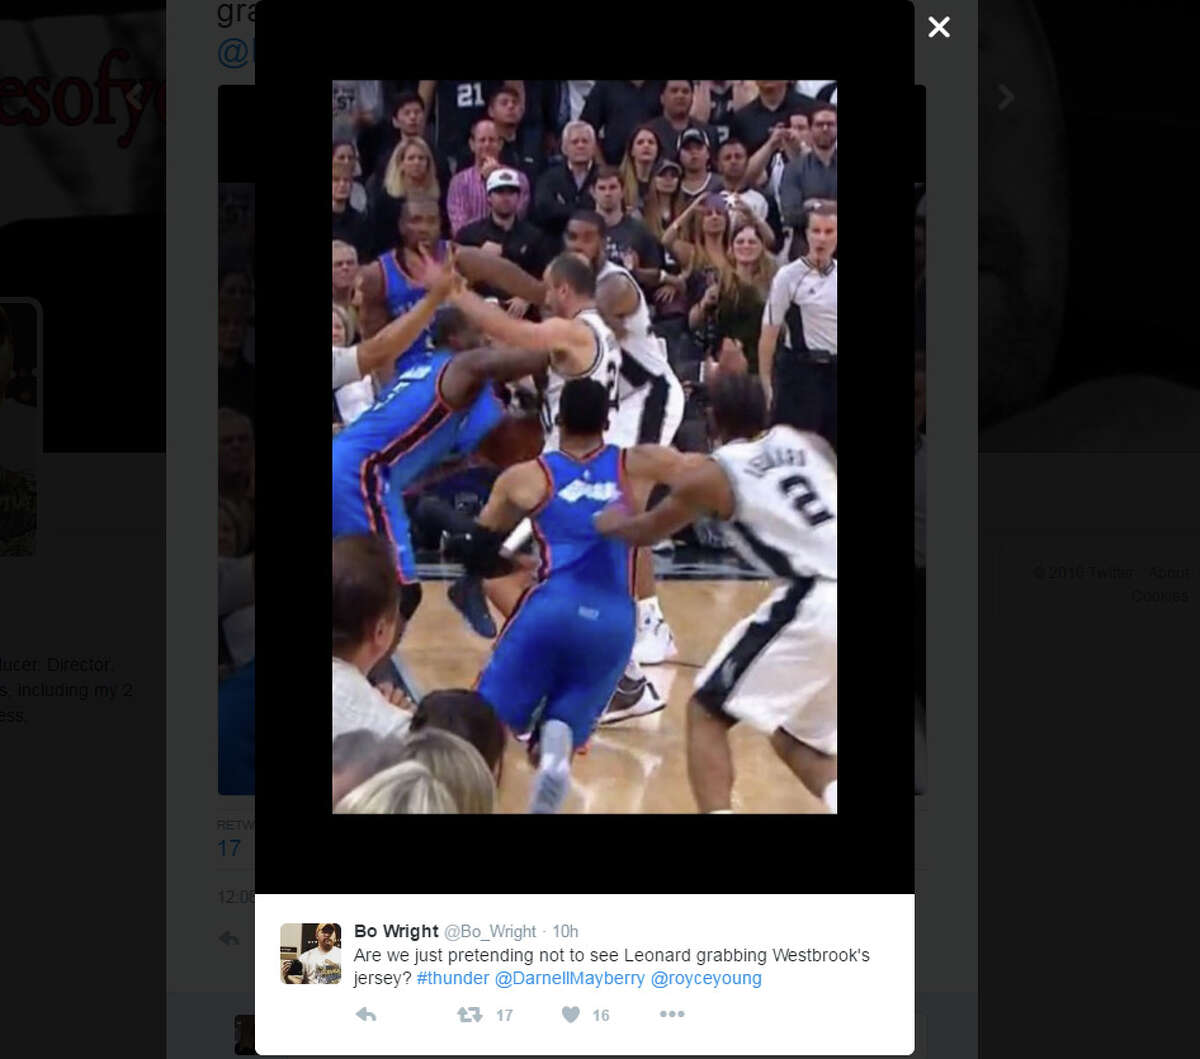 3. As Waiters extends to make contact with Ginobili, Kawhi Leonard tracks Oklahoma City star Russell Westbrook. No violation is called.Tweet: